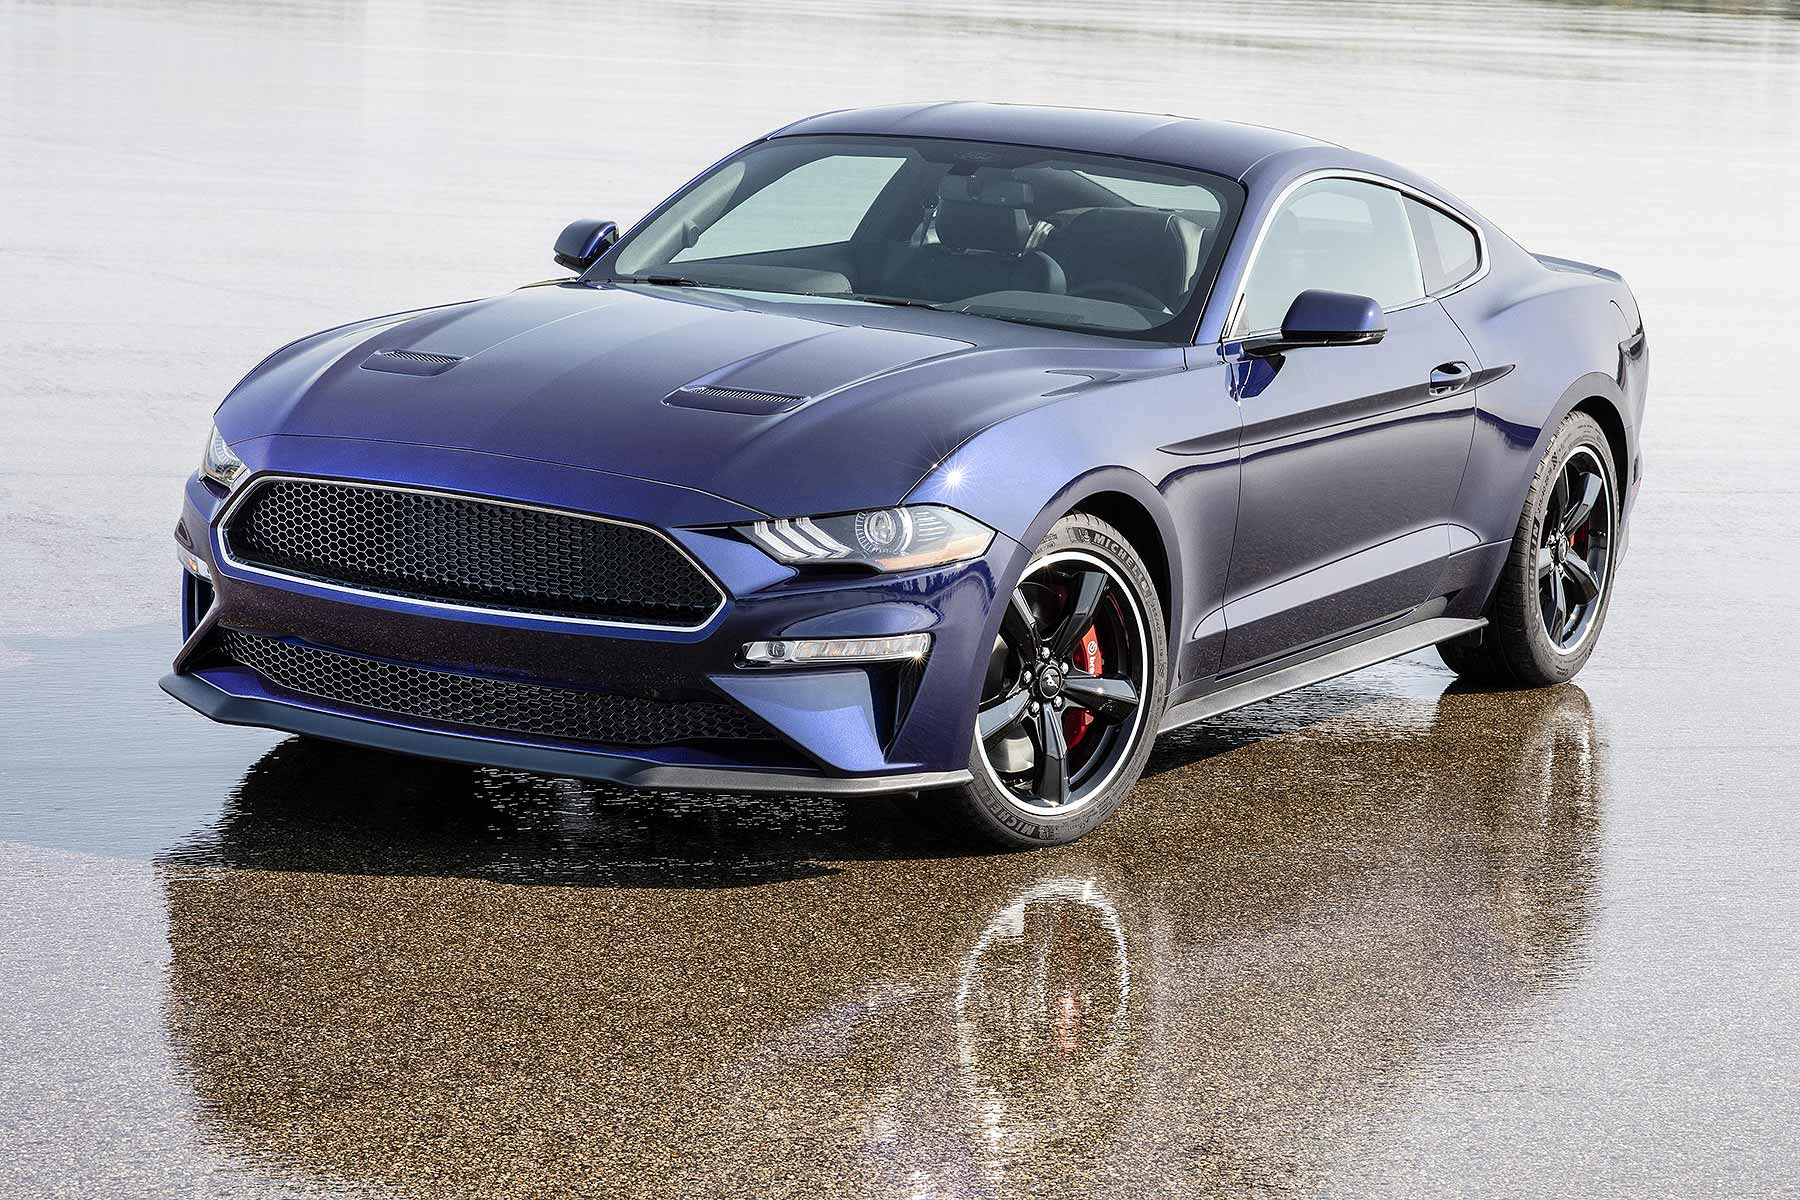 Ford is raffling the worlds only blue mustang bullitt for charity